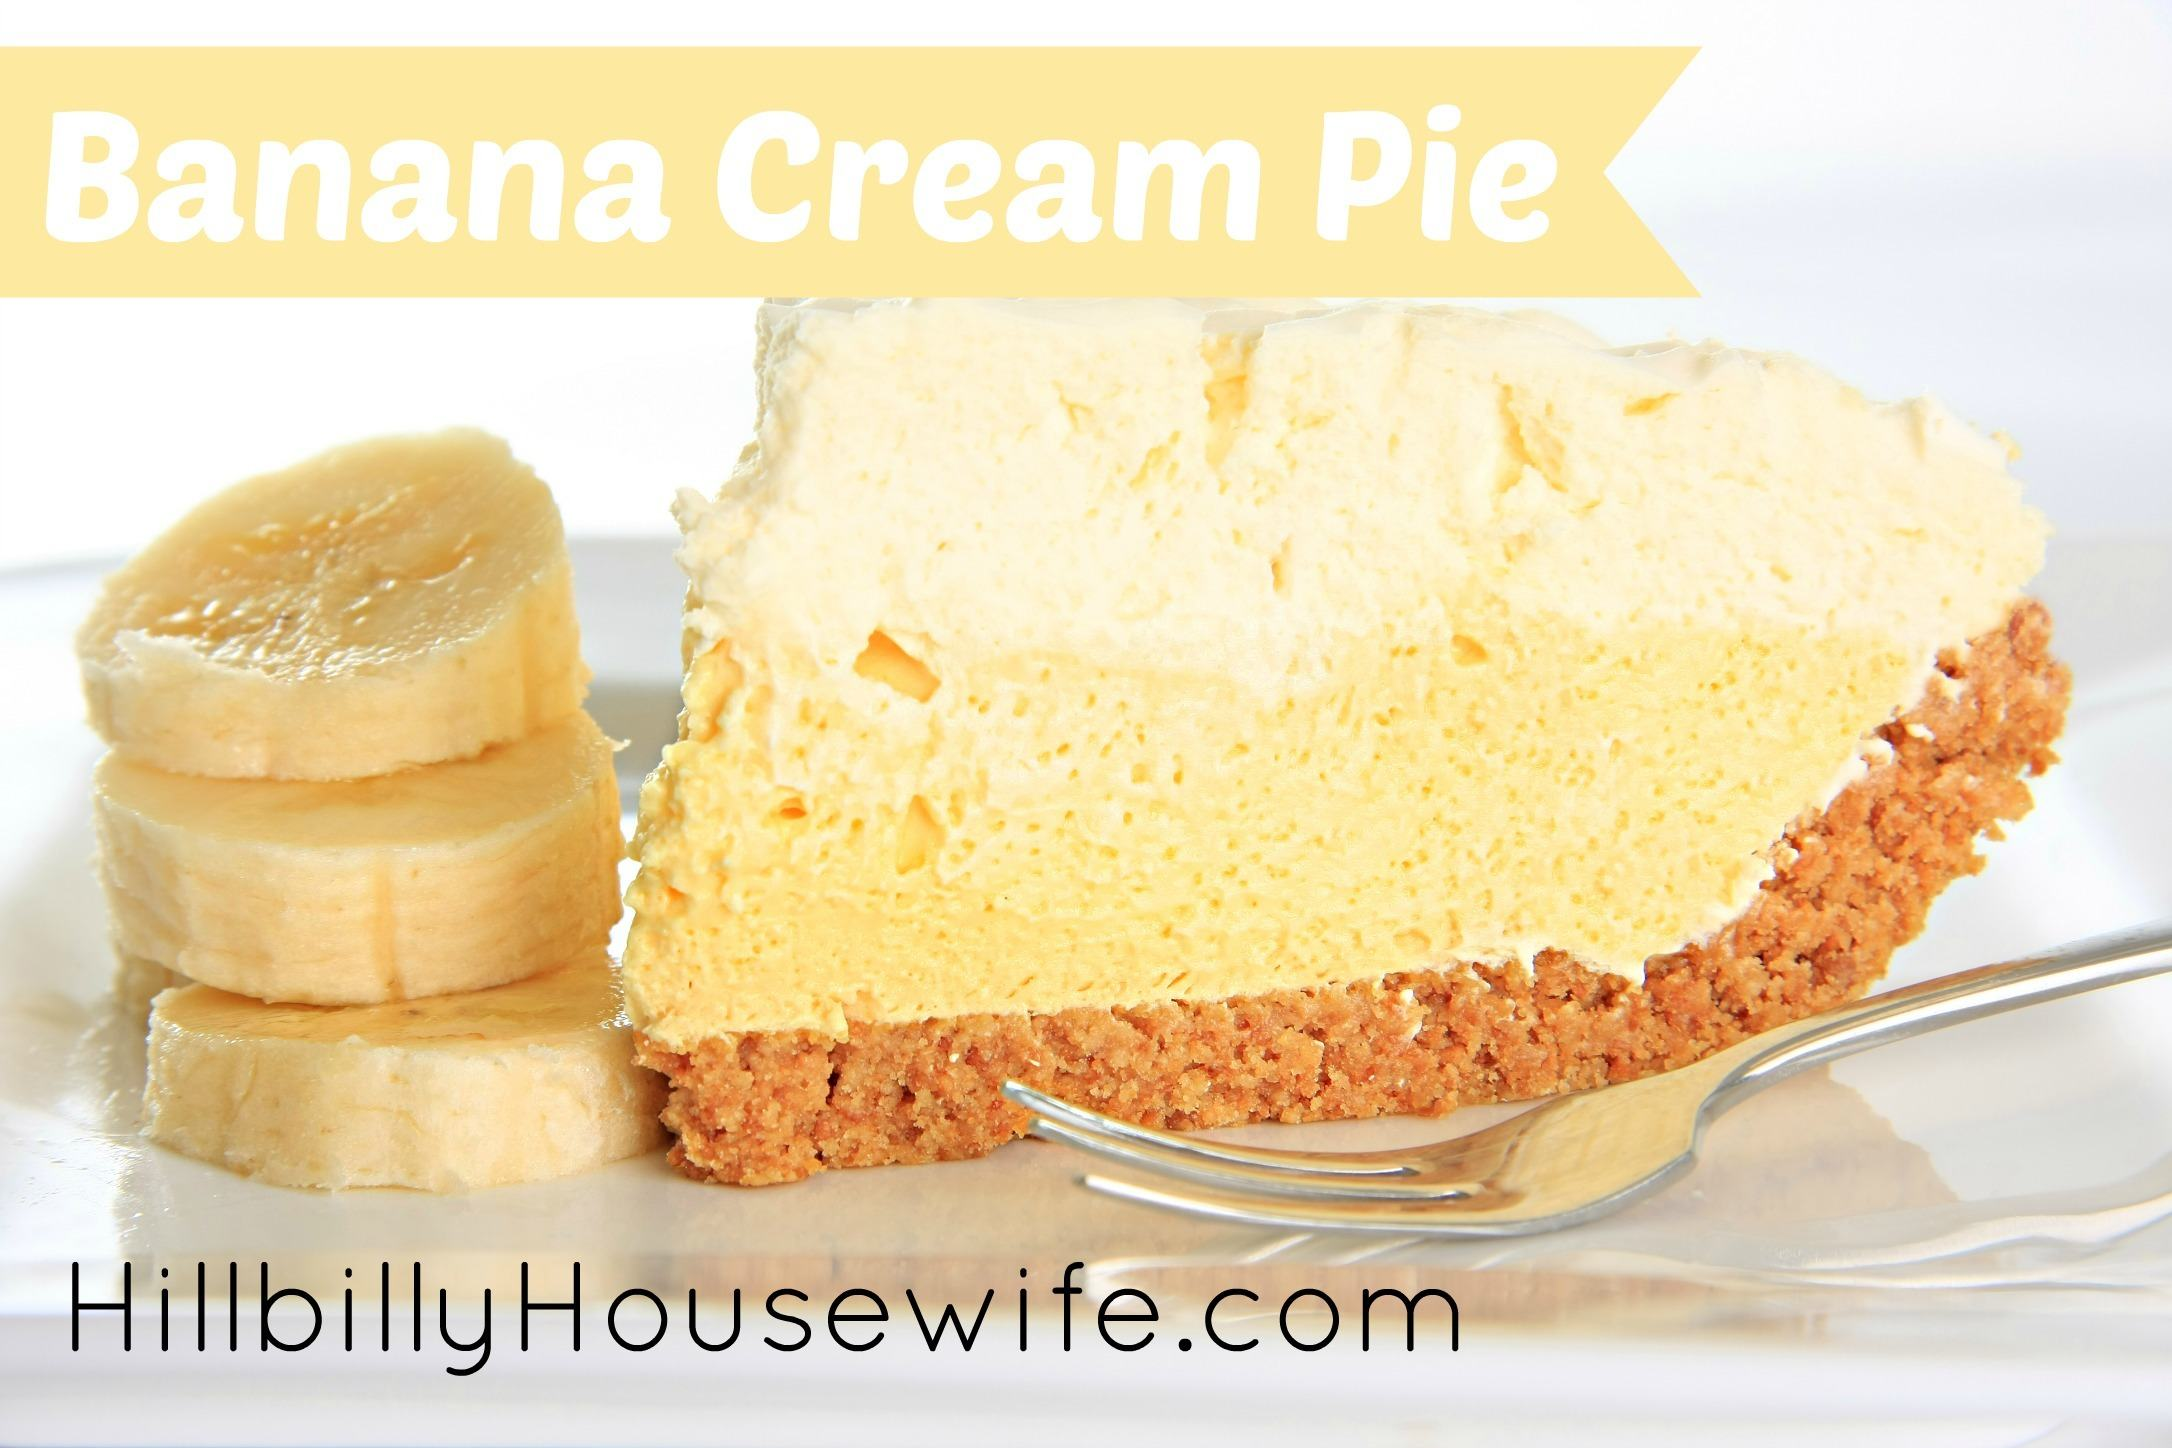 Banana Cream Pie Recipe | Hillbilly Housewife